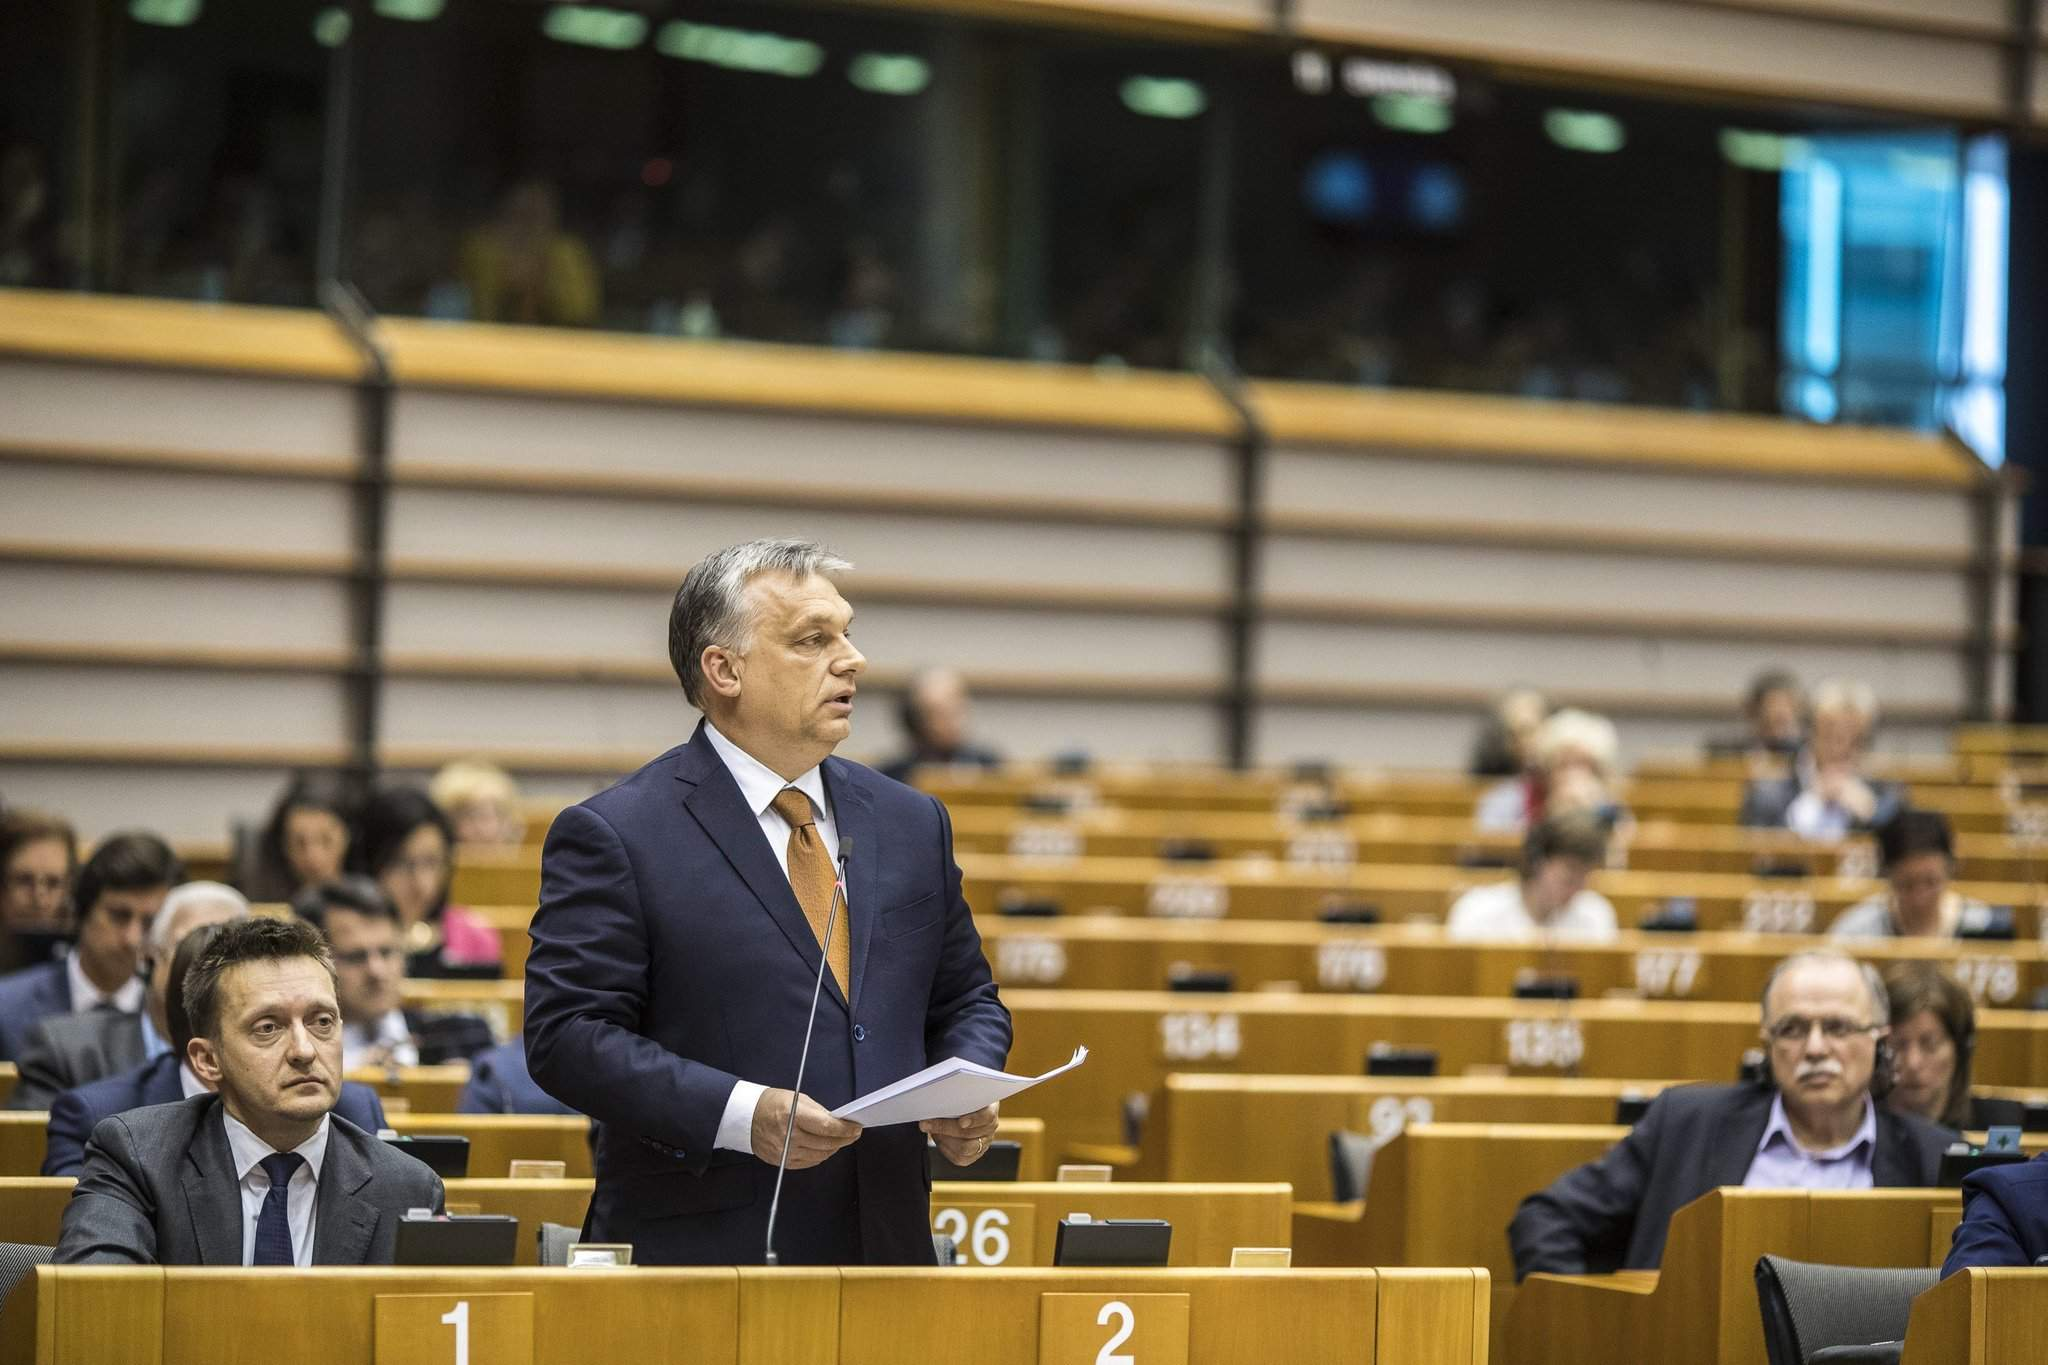 Opposition parties slam Orbán for Brussels remarks – Daily News Hungary